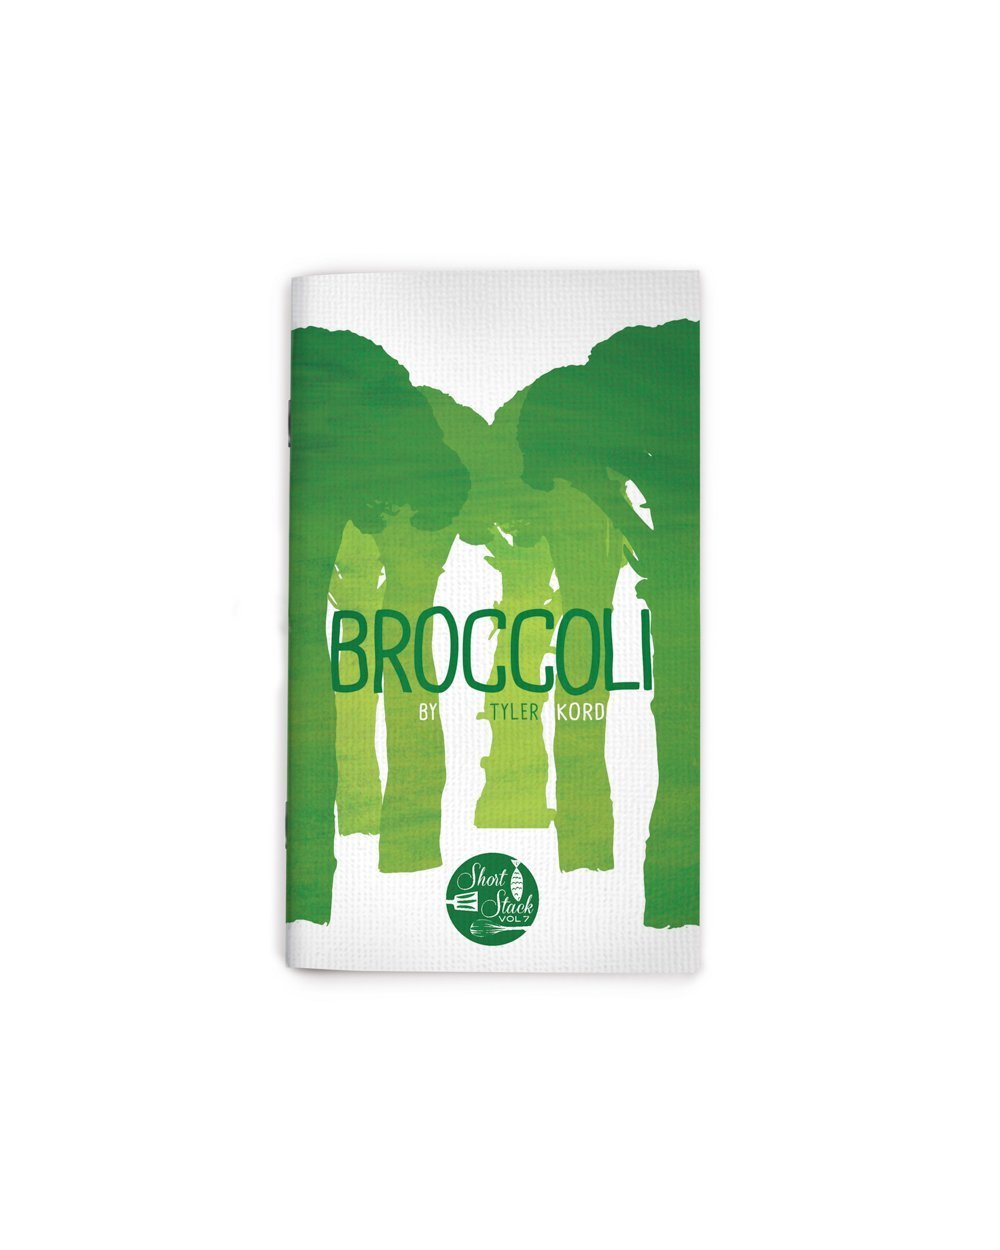 Vol 7: Broccoli (By Tyler Kord)